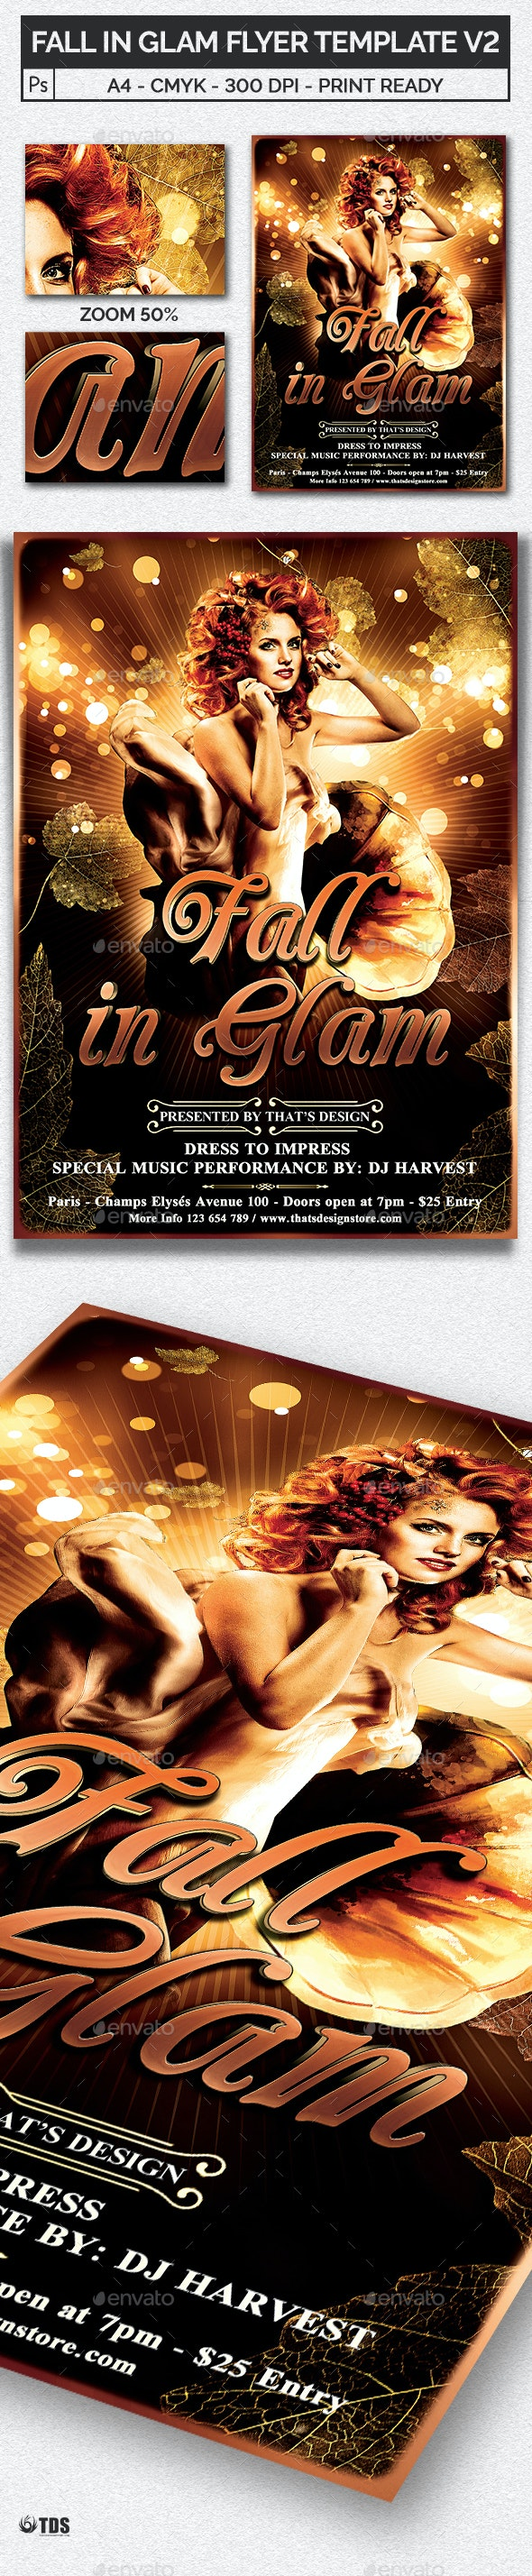 Fall in Glam Flyer Template V2 - Clubs & Parties Events